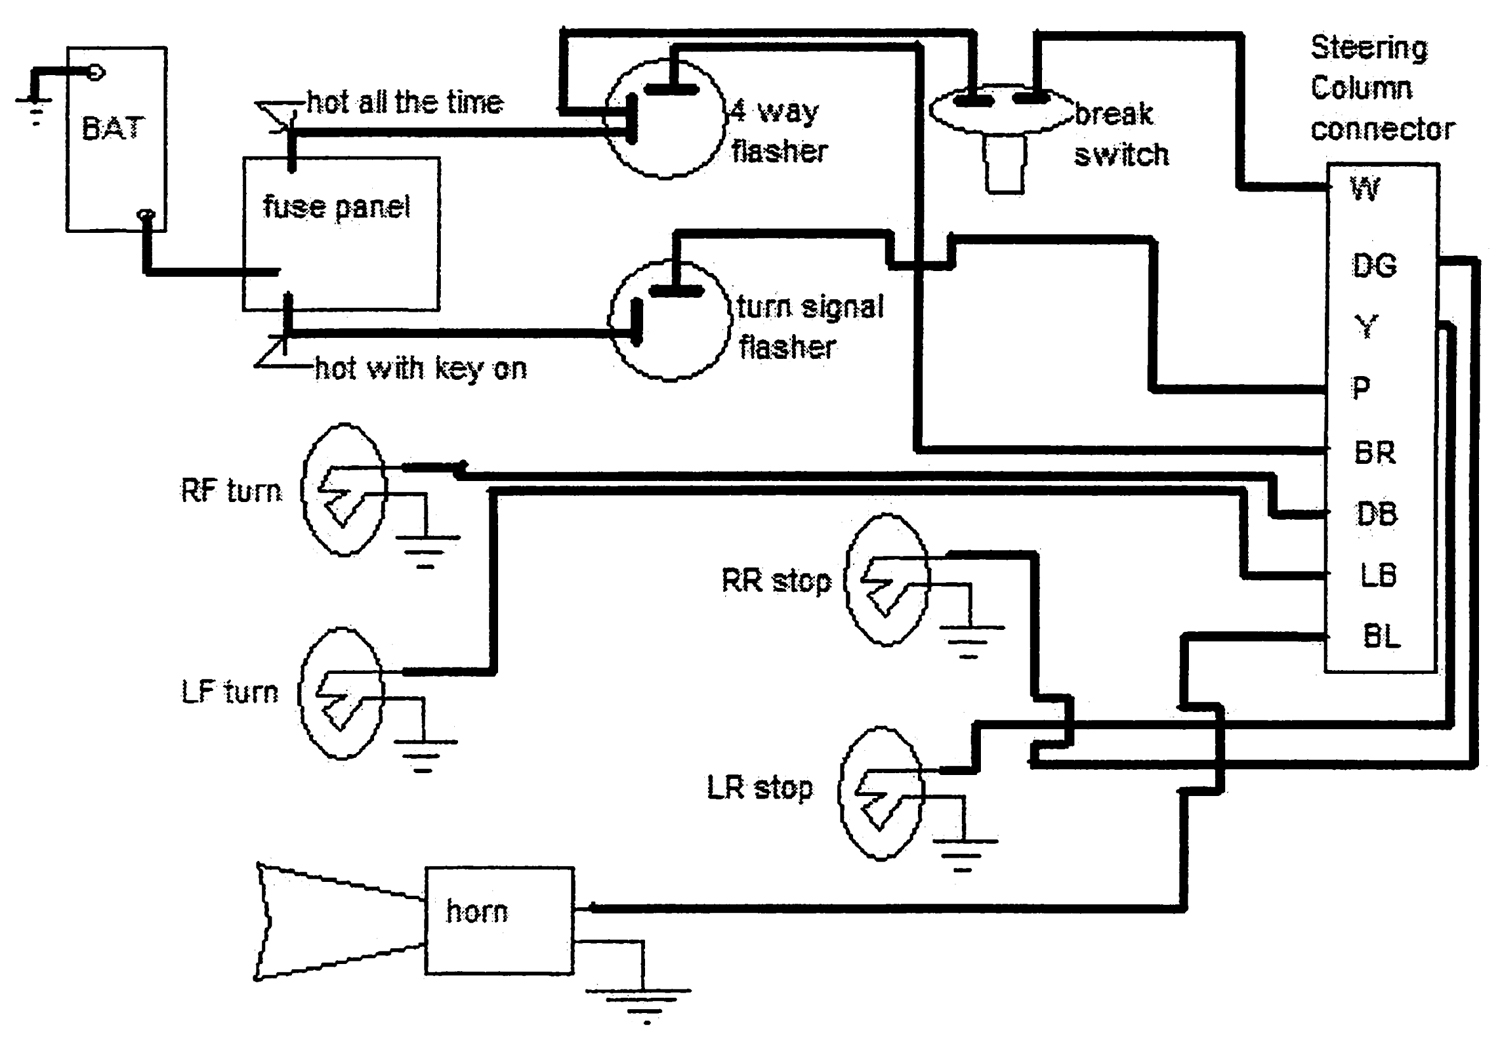 Basic Turn Signal Wiring Diagram - wiring diagram on the net on